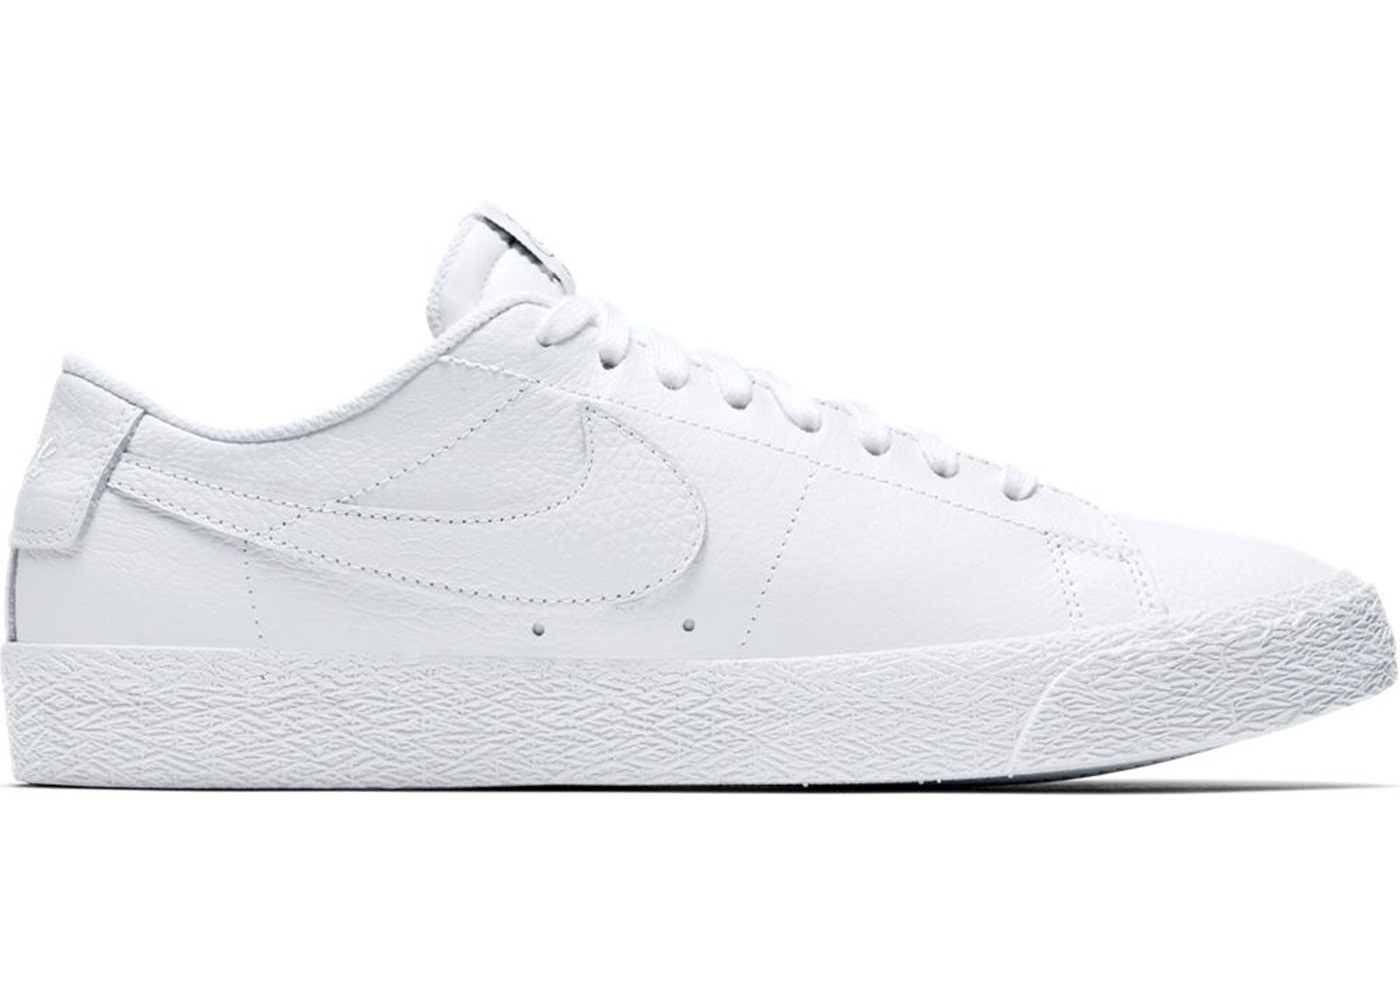 eab3381fefa2 Buy Nike SB Other Shoes   Deadstock Sneakers